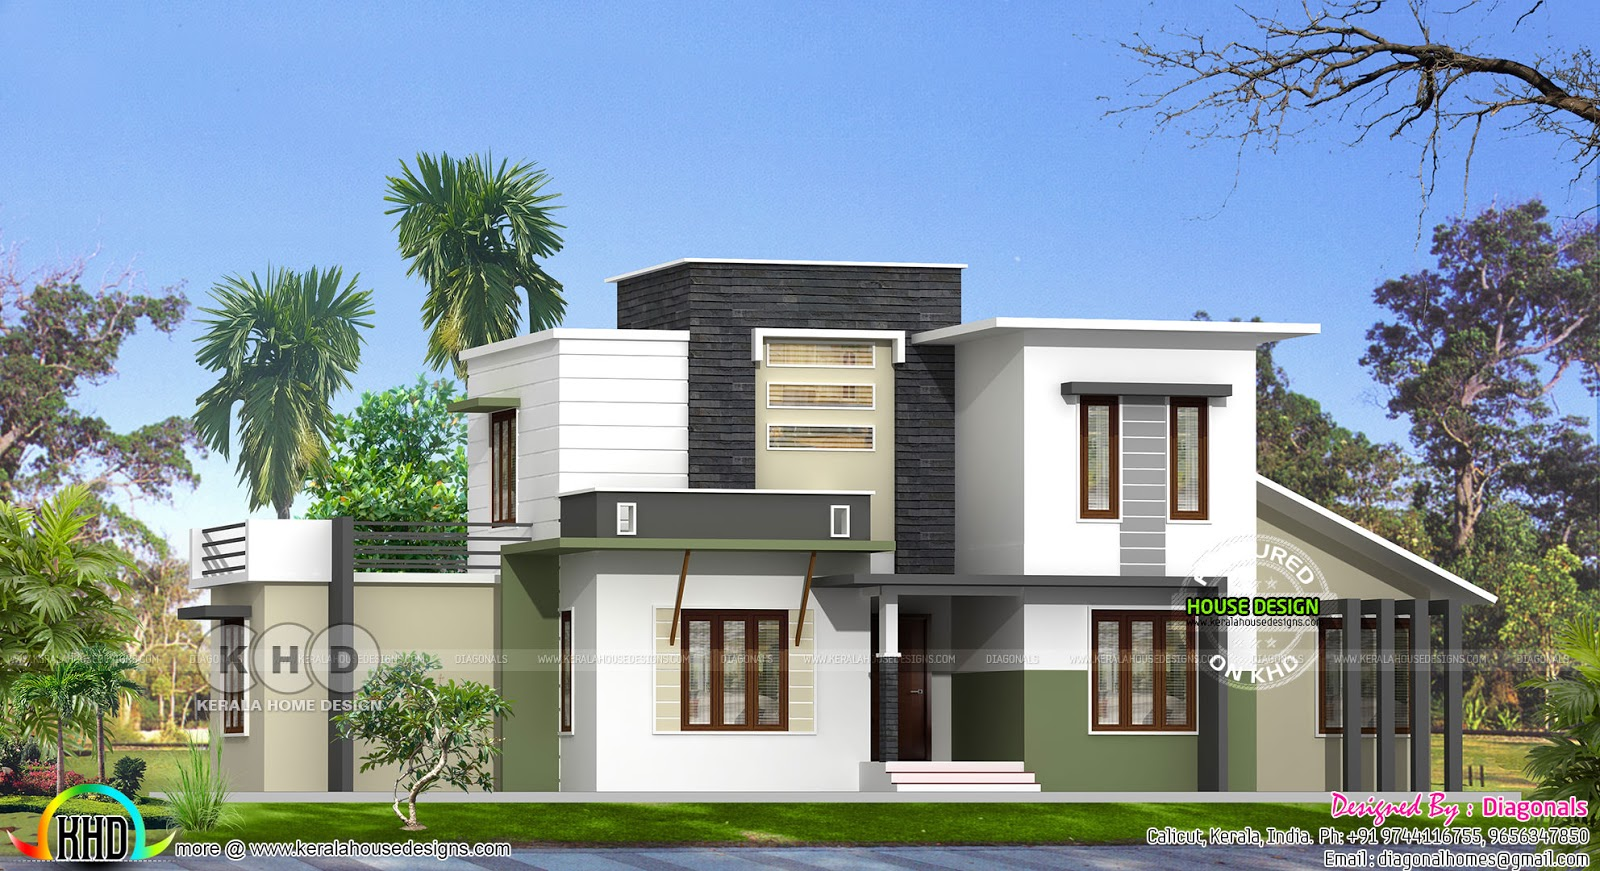 Modern flat roof 4 bedroom house architecture kerala for 3000 sq ft house plans kerala style